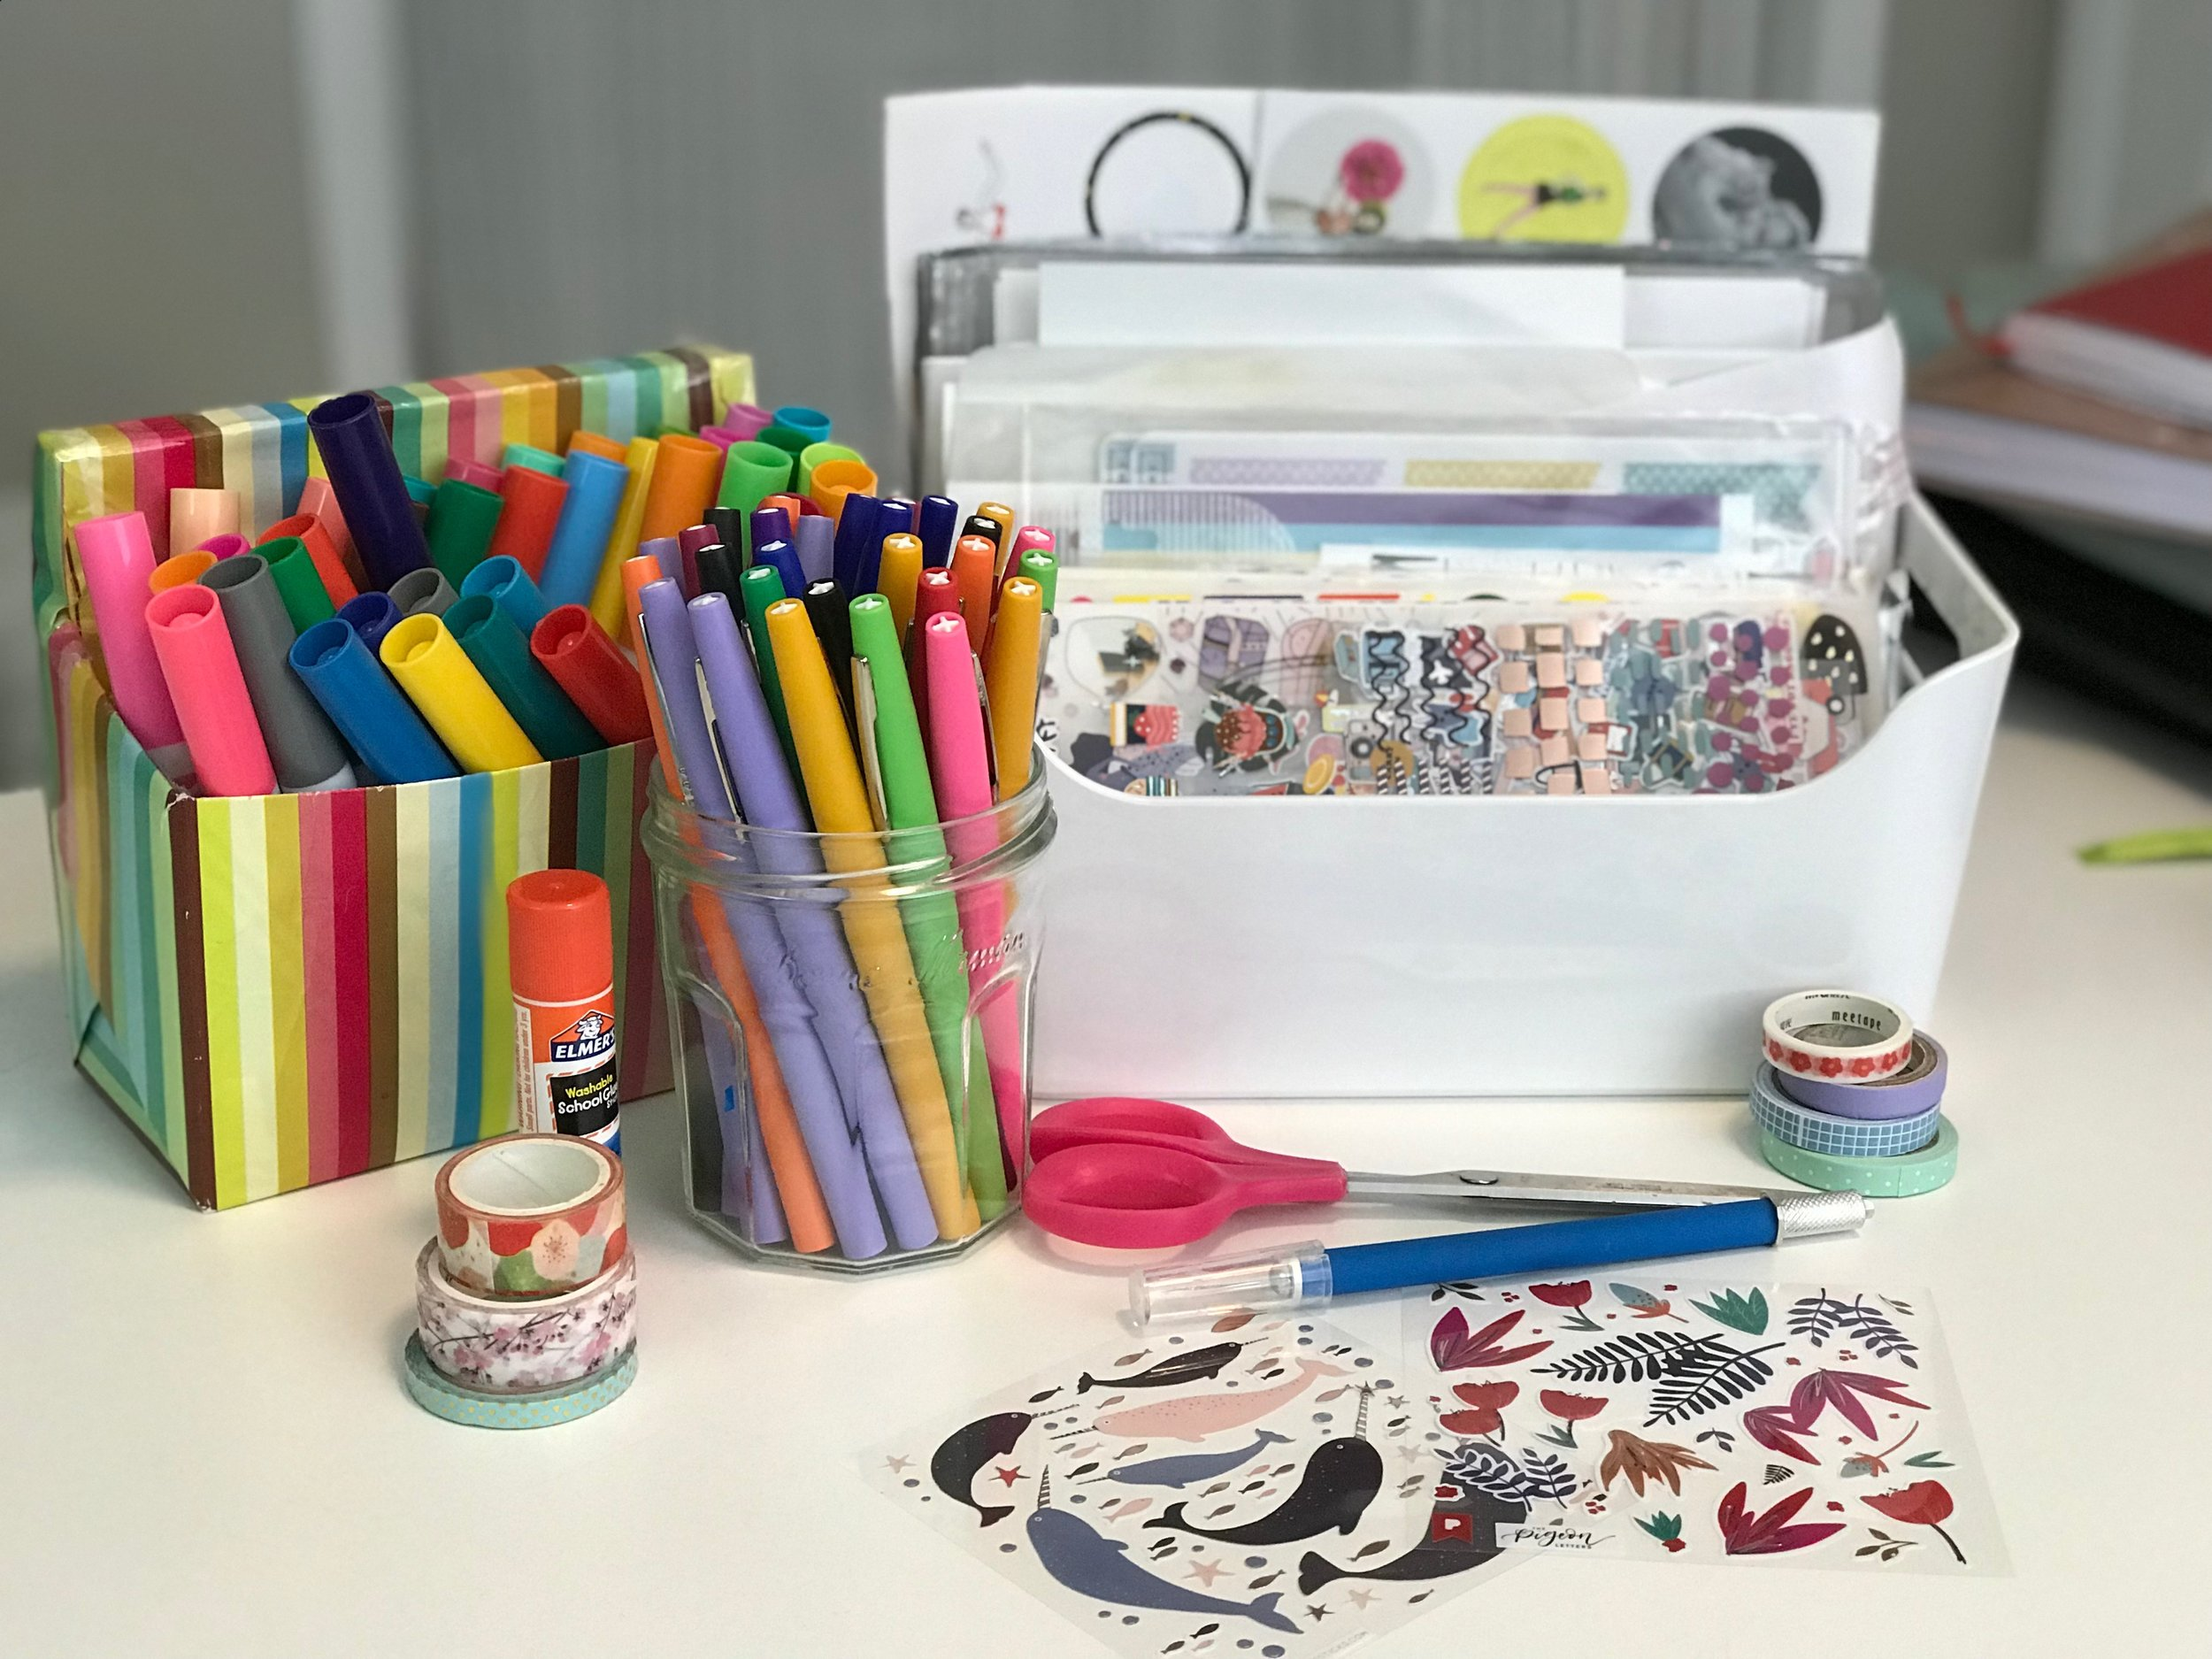 Personalize and customize your planner with washi tape, stickers, markers, and pens. Sticker subscriptions are a great idea, and I've included the best subscription services. Decorating a planner makes it more personal and fun, but color coding is also important for organization and time management.